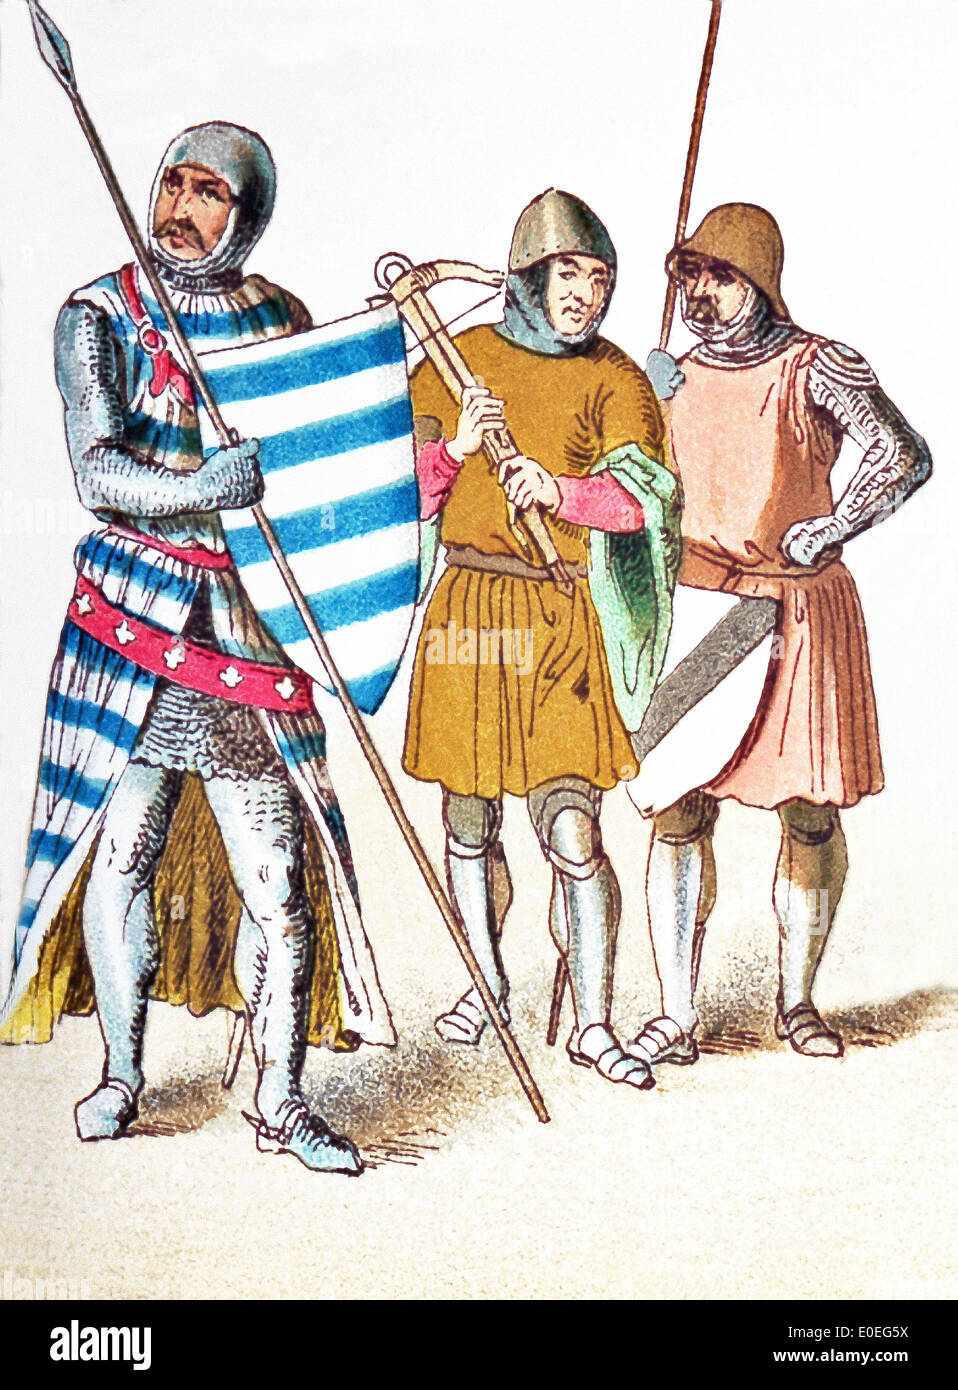 The English people represented here are: a knight in 1333, a cross-bow man in 1376, and a knight. - Stock Image